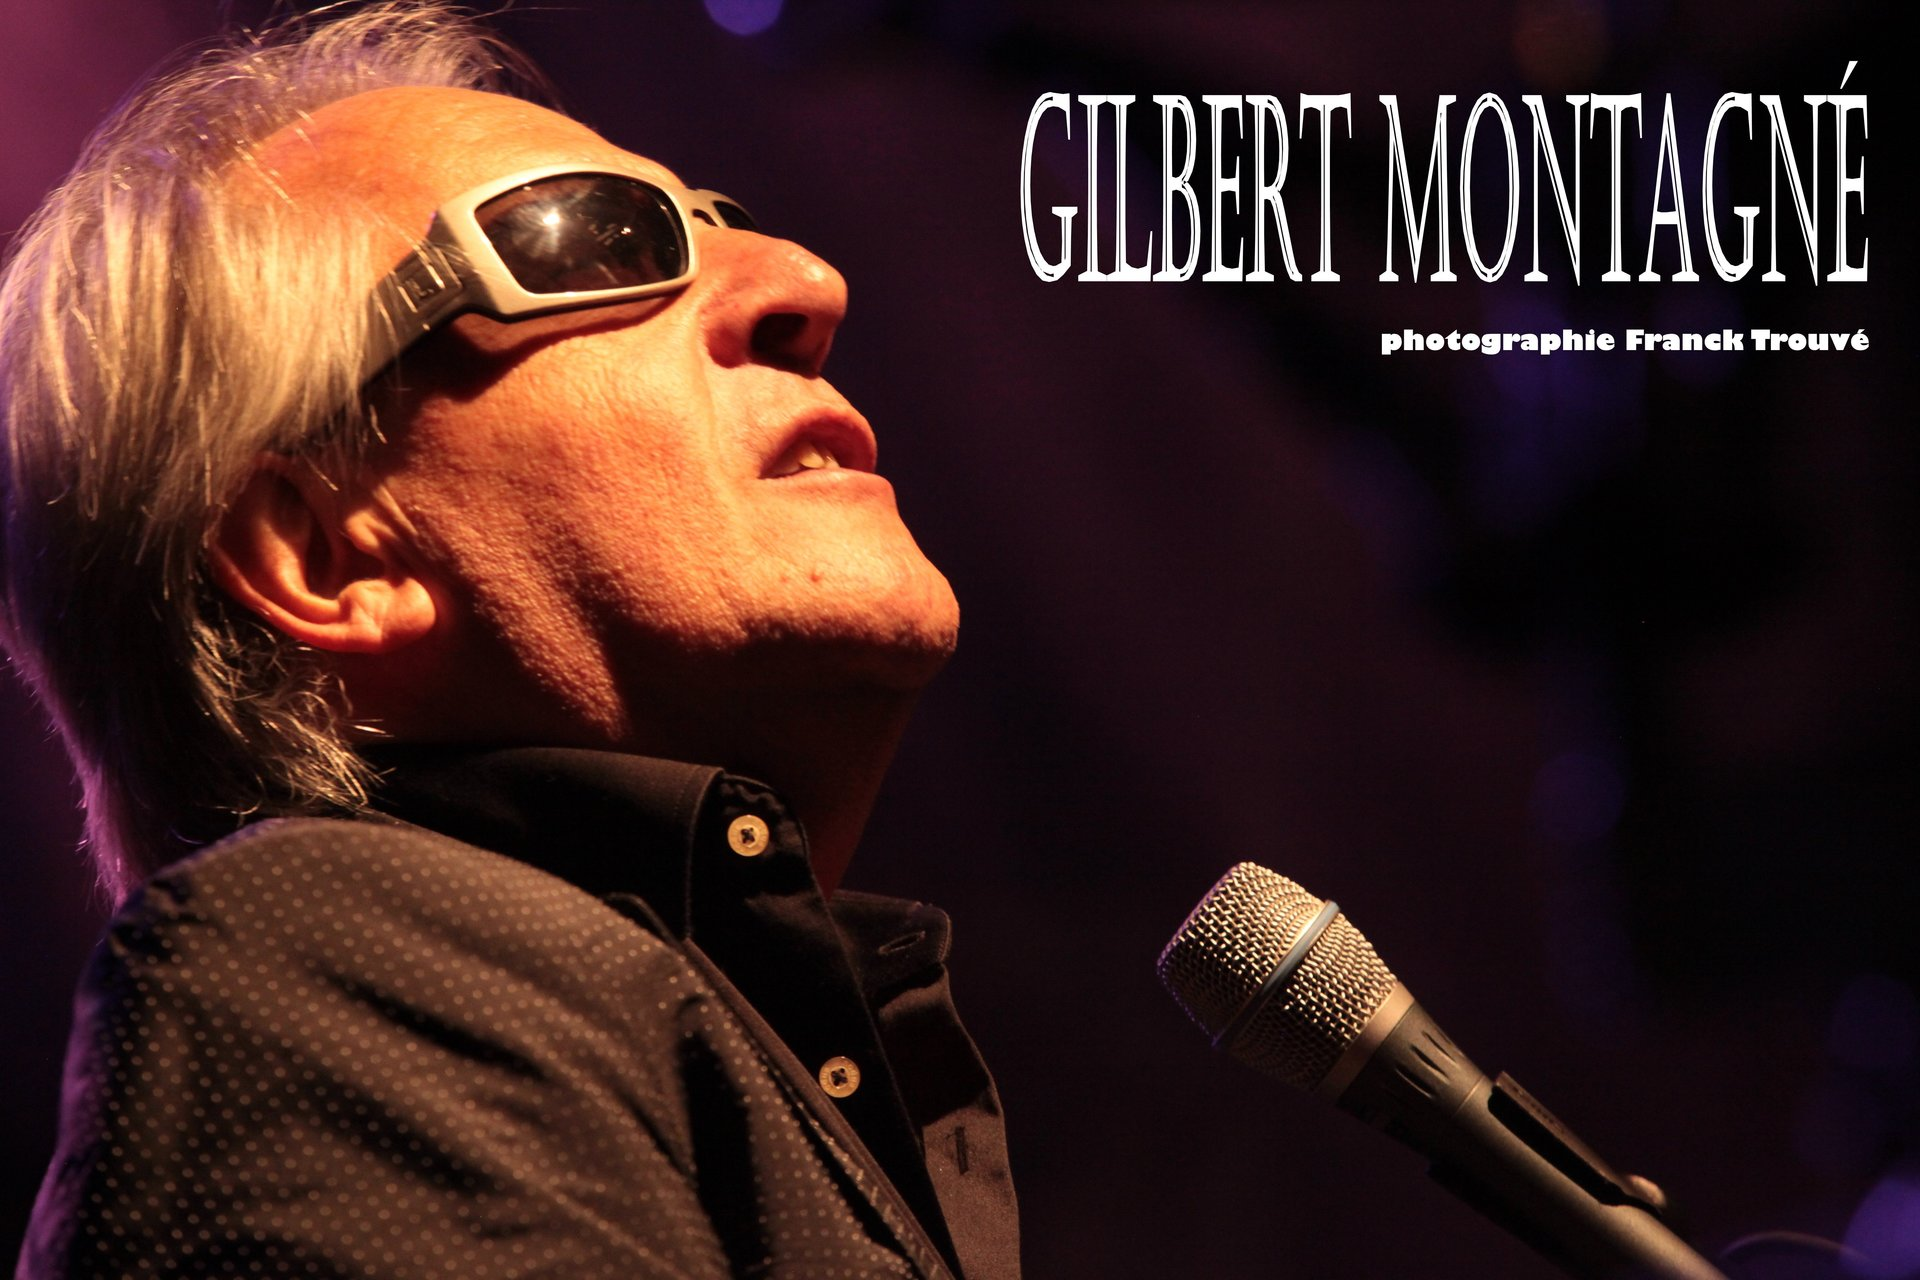 gilbert montagne photo franck trouve